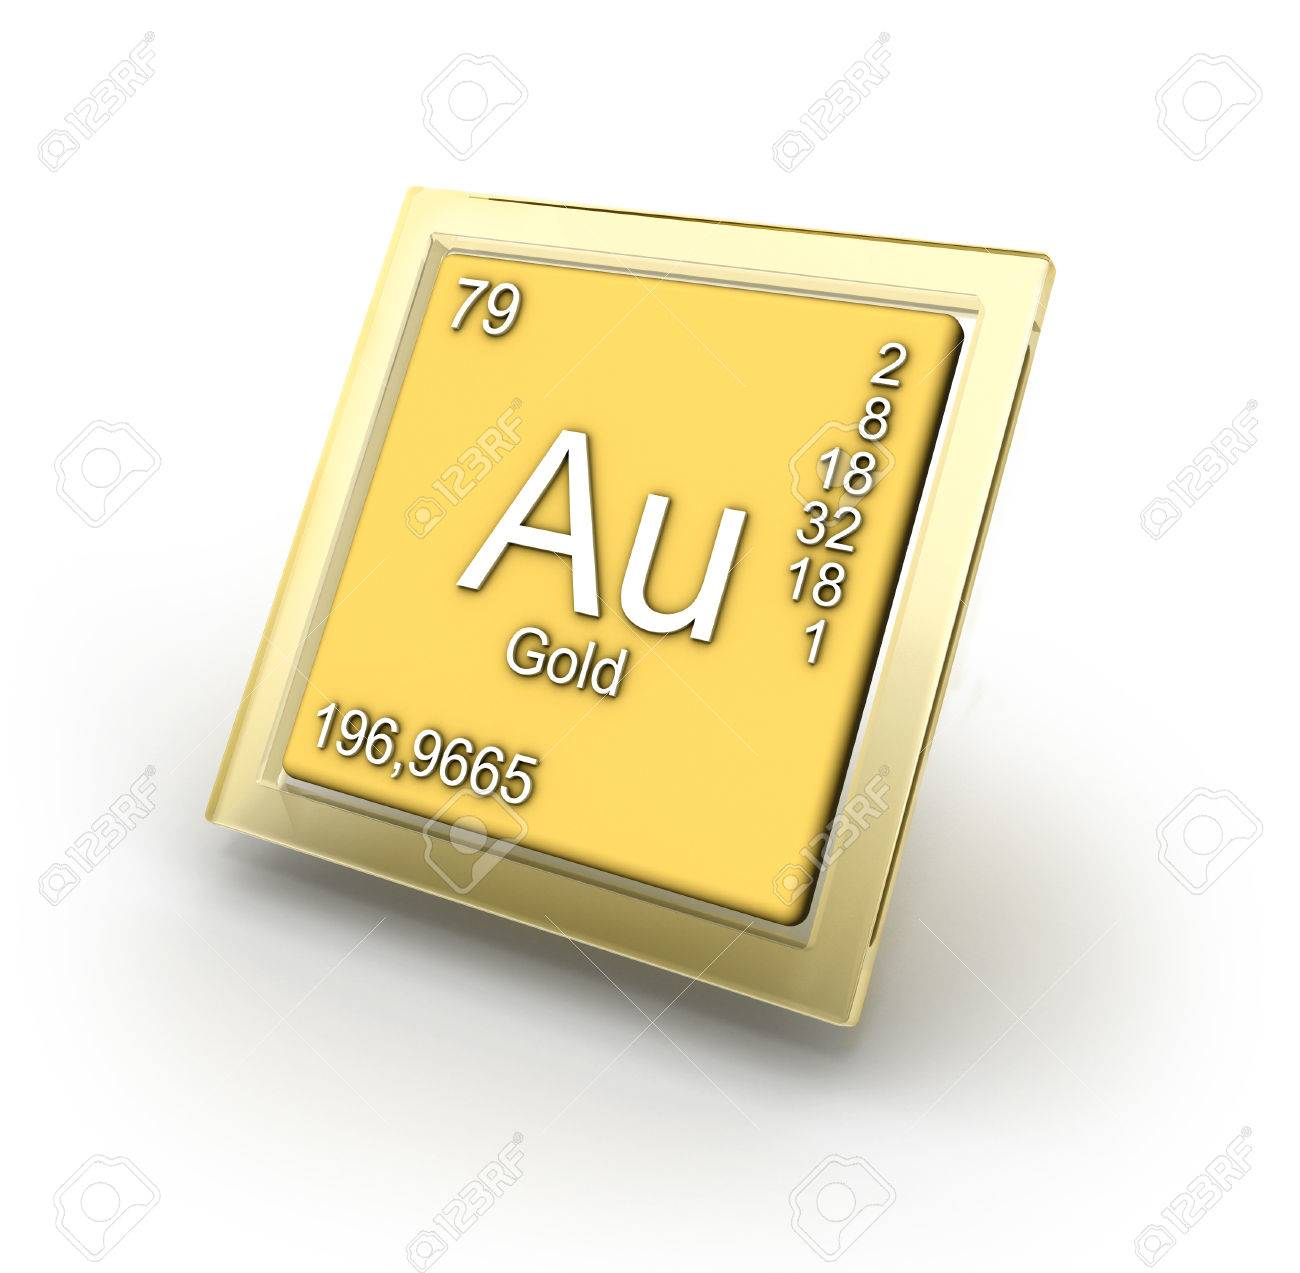 Gold chemical element sign stock photo picture and royalty free gold chemical element sign stock photo 28274258 buycottarizona Image collections